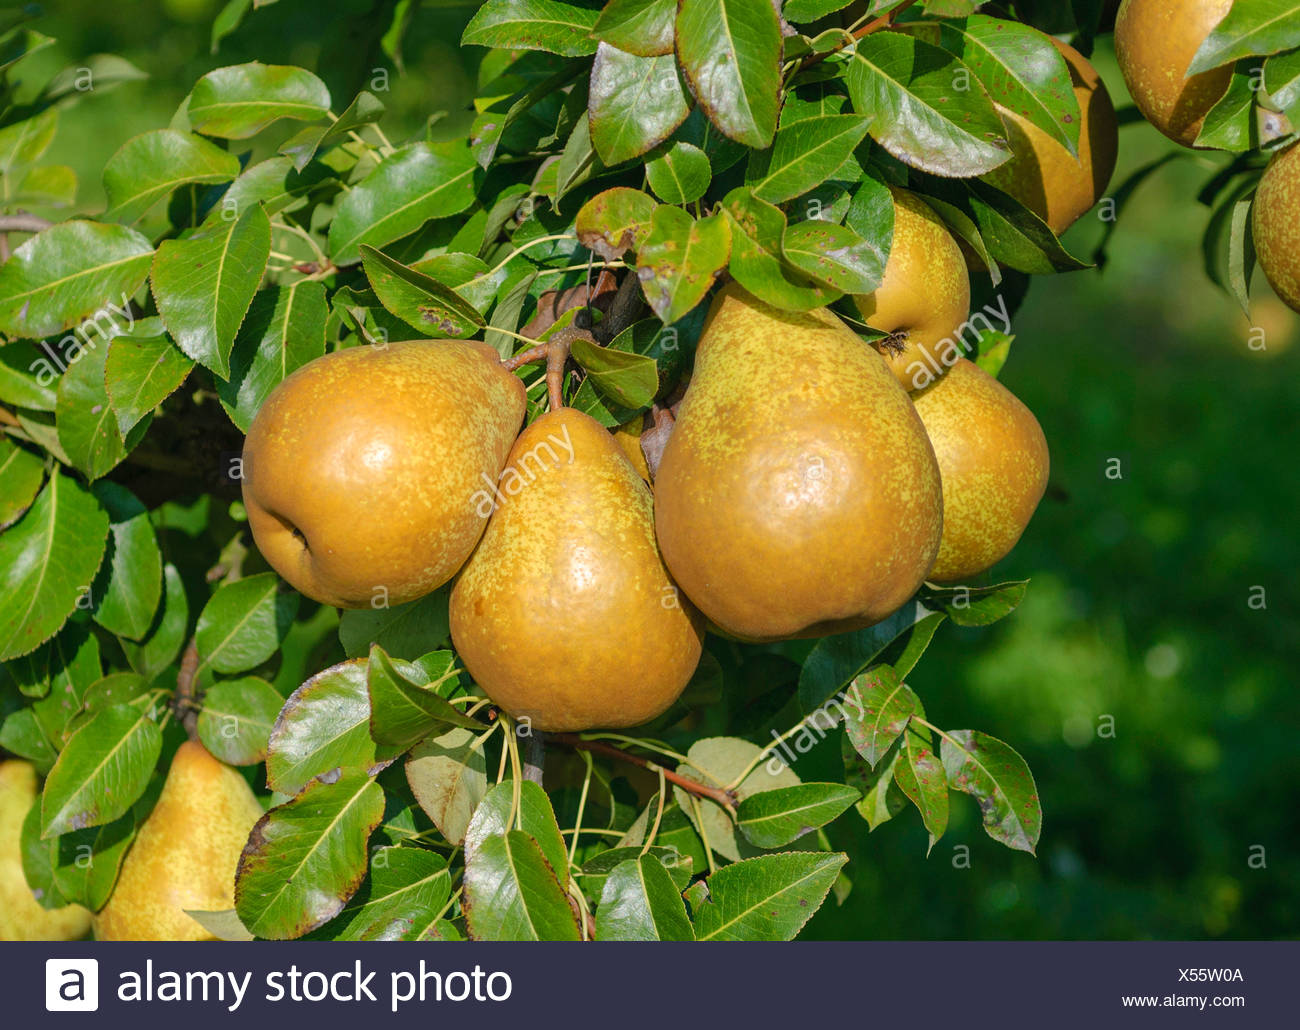 Common pear (Pyrus communis 'General Leclerc', Pyrus communis General Leclerc), cultivar General Leclerc - Stock Image